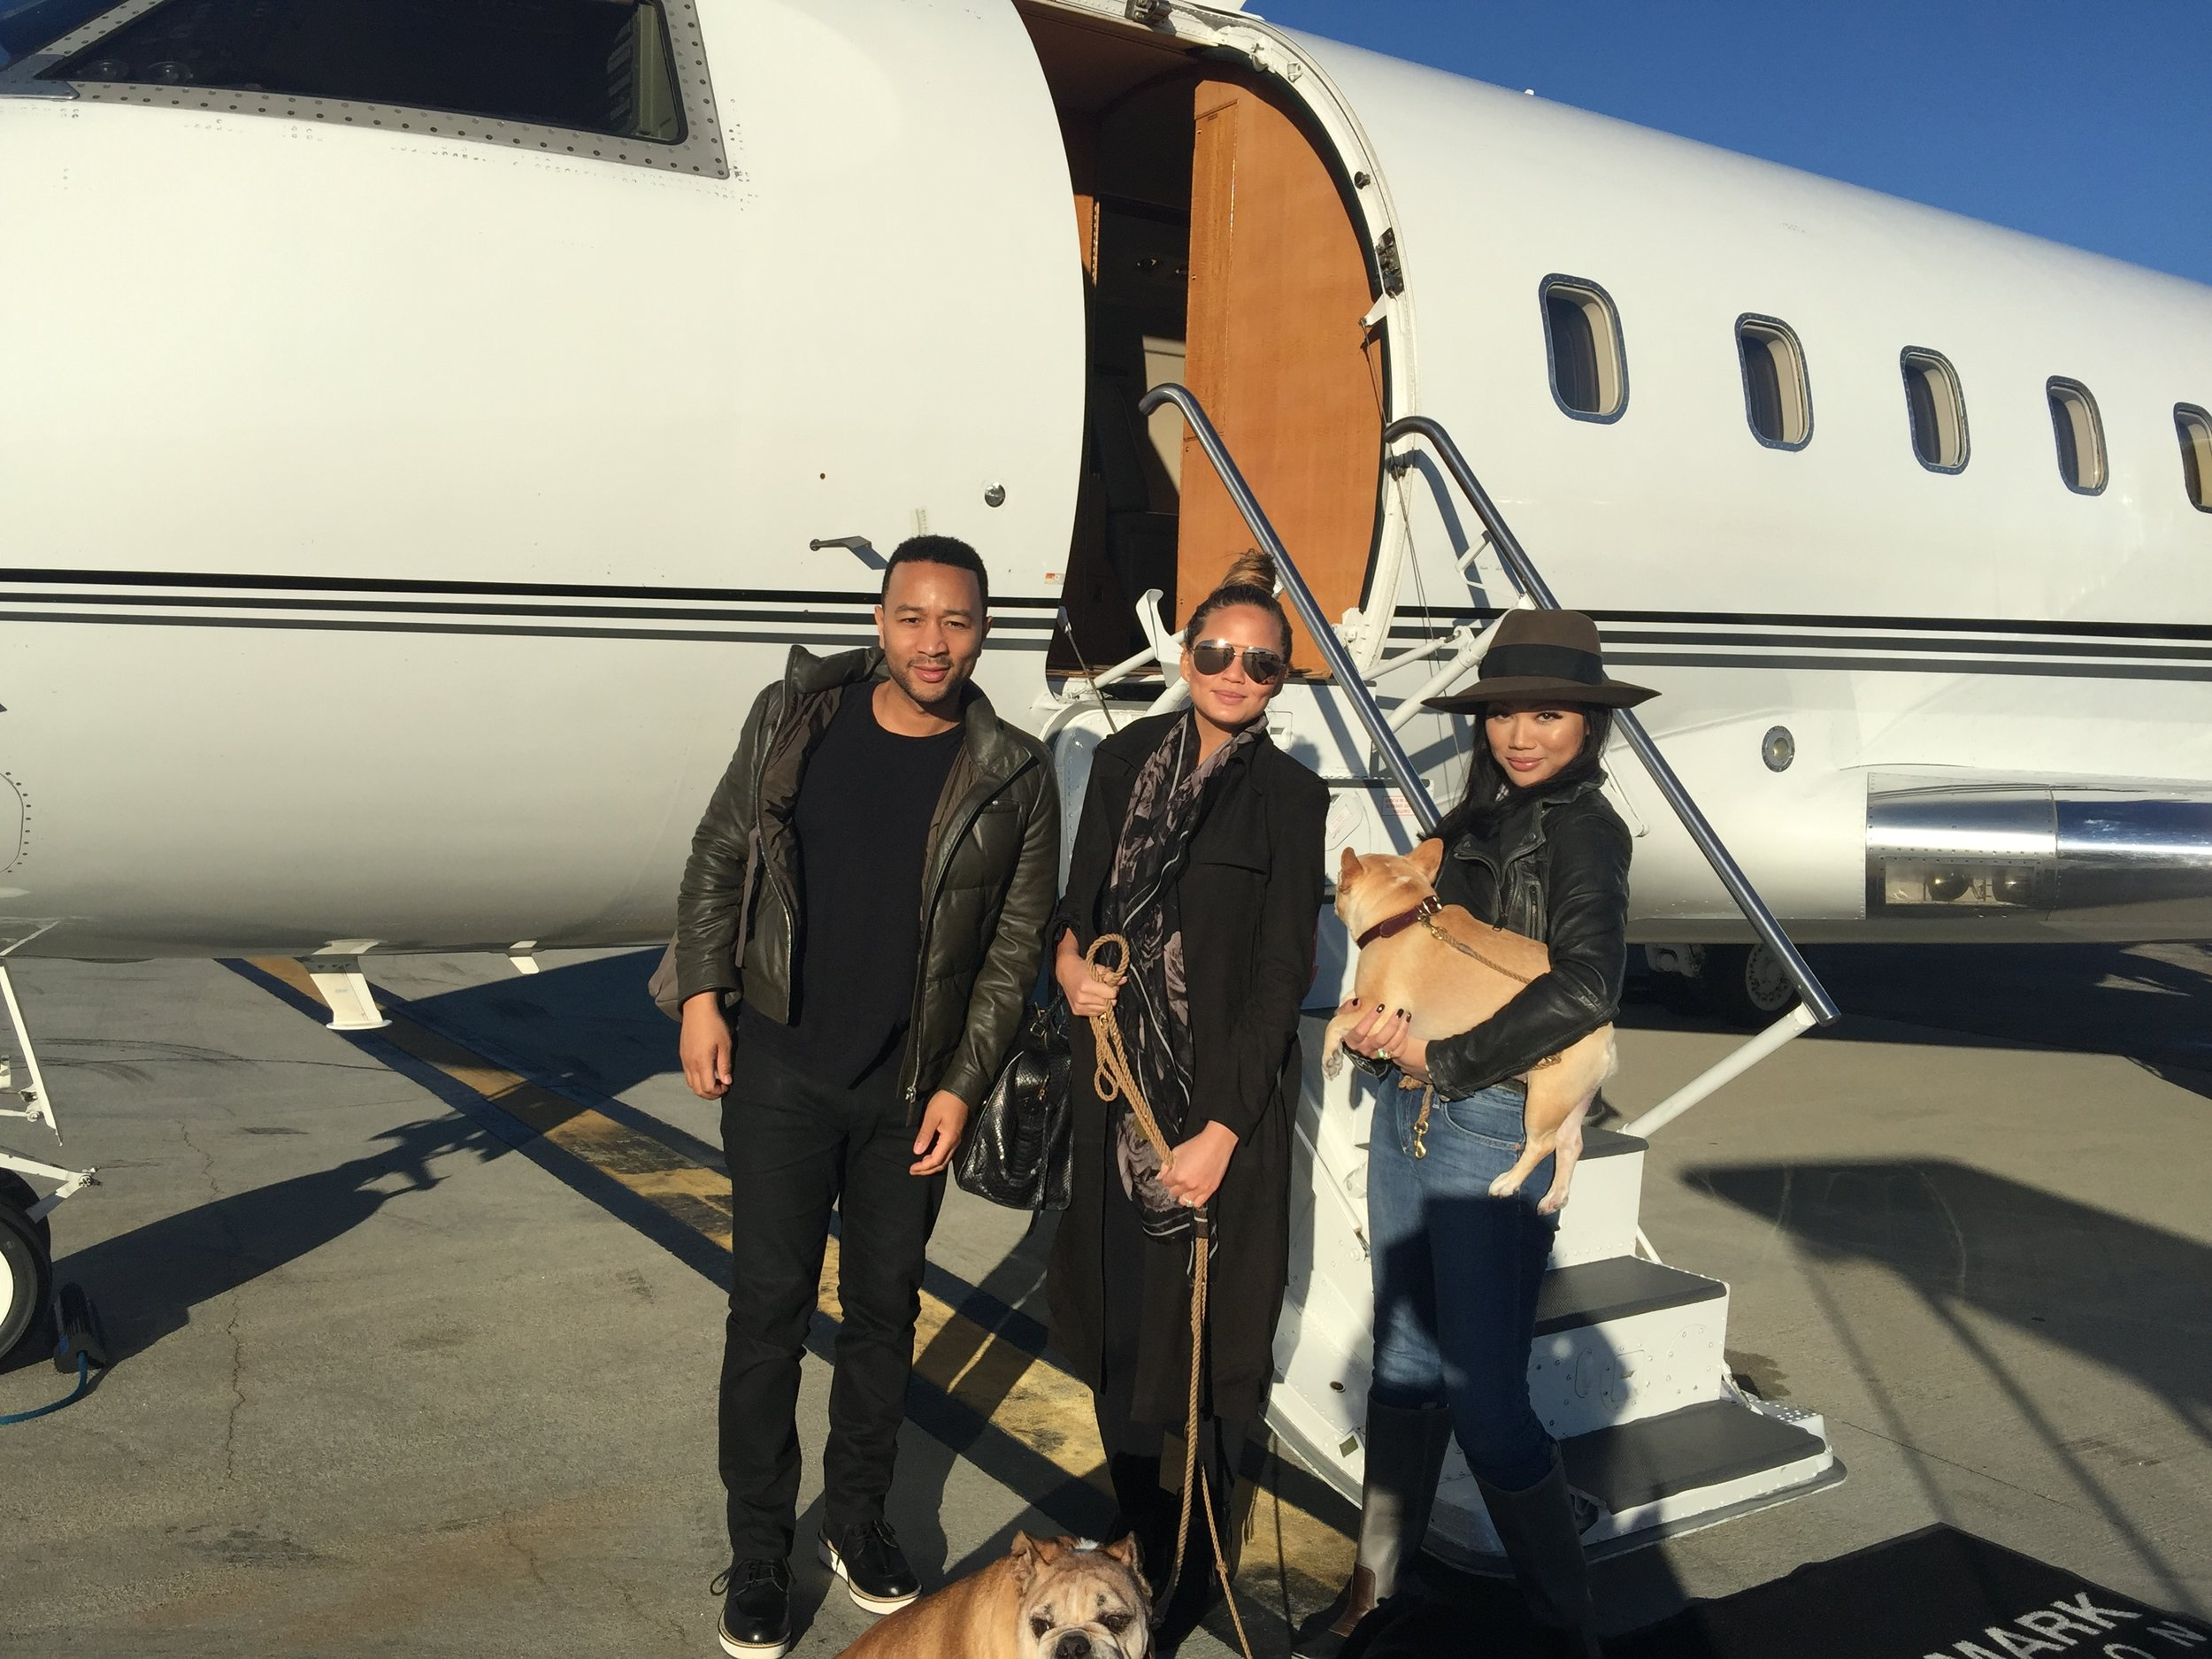 Tina with her sister, Chrissy Teigen, and her brother-in-law, John Legend + the canine bowwowsters